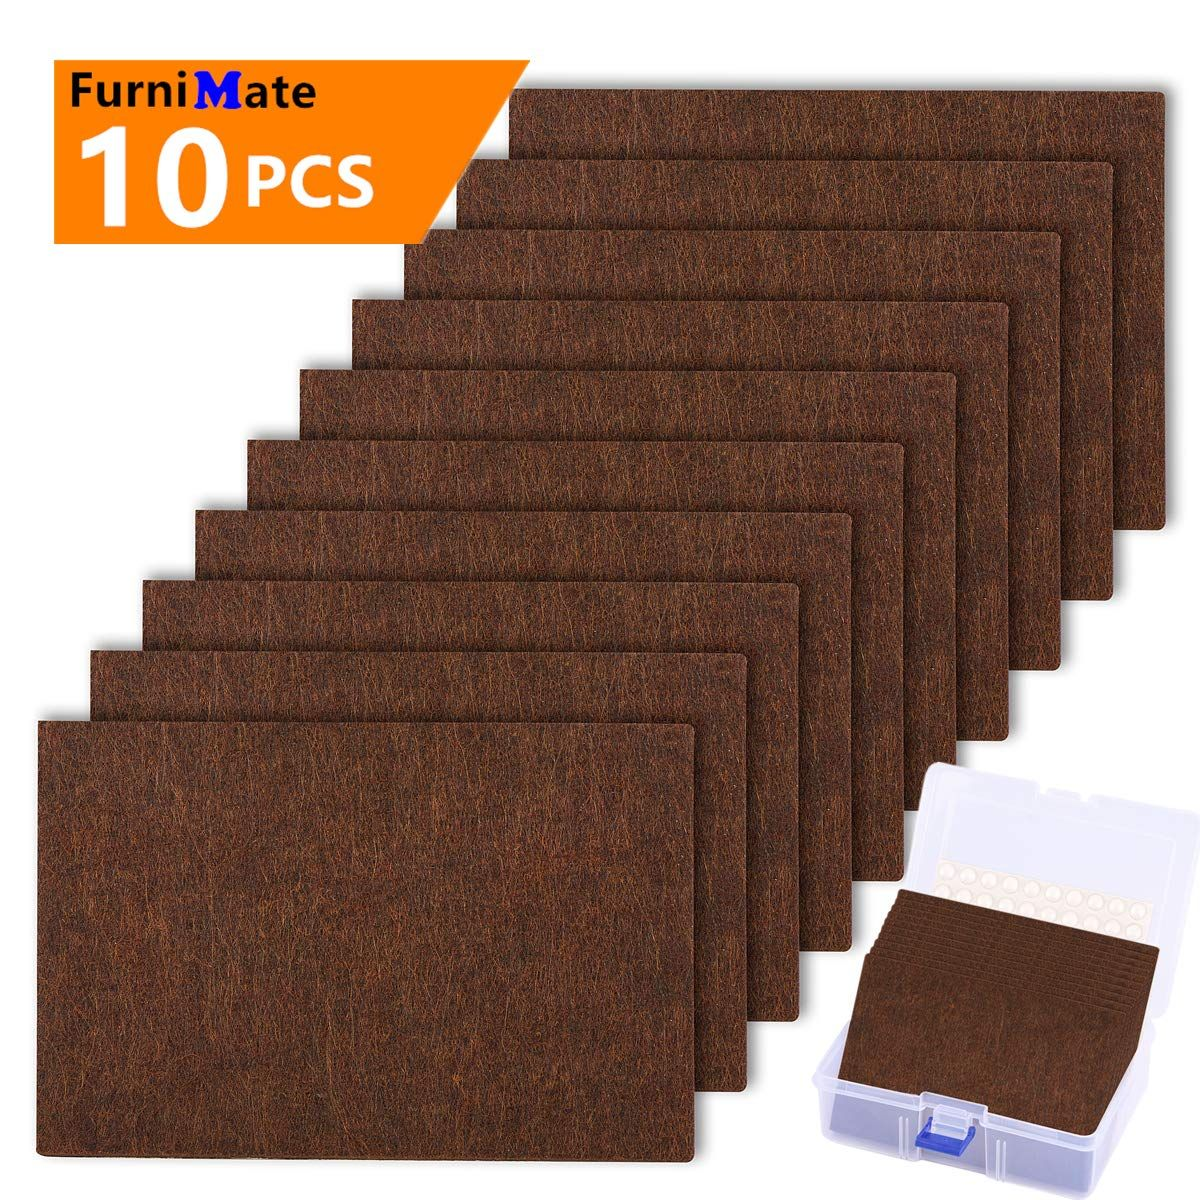 Furniture Felt Pads Sheets 10 Pieces Pack 6 X 4 Large Felt Furniture Pads Brown Heavy Duty 1 5 Anti Scra Furniture Pads Felt Furniture Pads Furniture Sliders